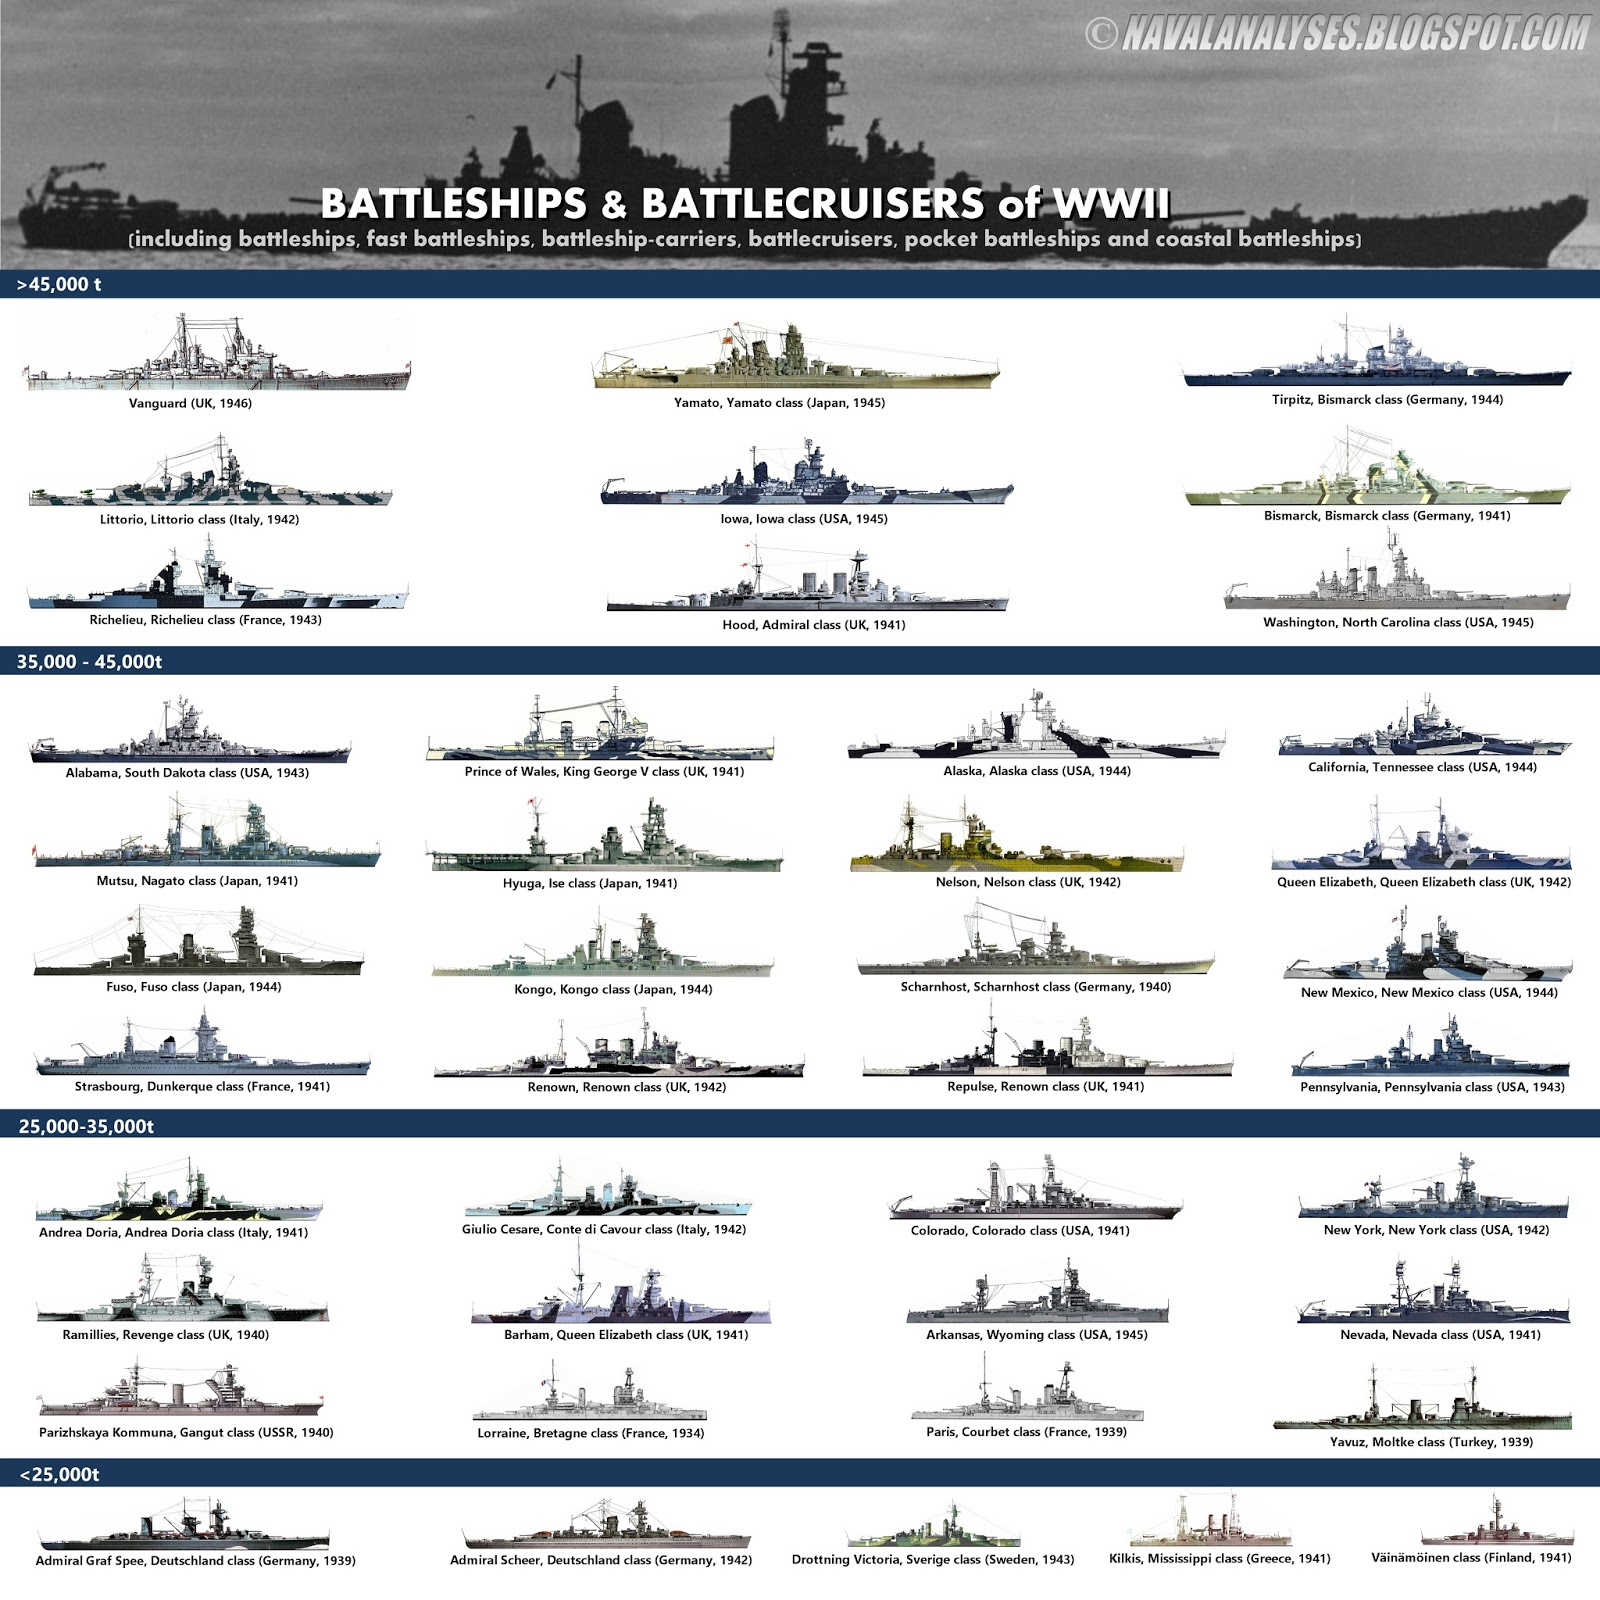 medium resolution of battleships and battlecruisers of wwii version iii for a high resolution image click here another version where the coastal battleships yavuz kilkis